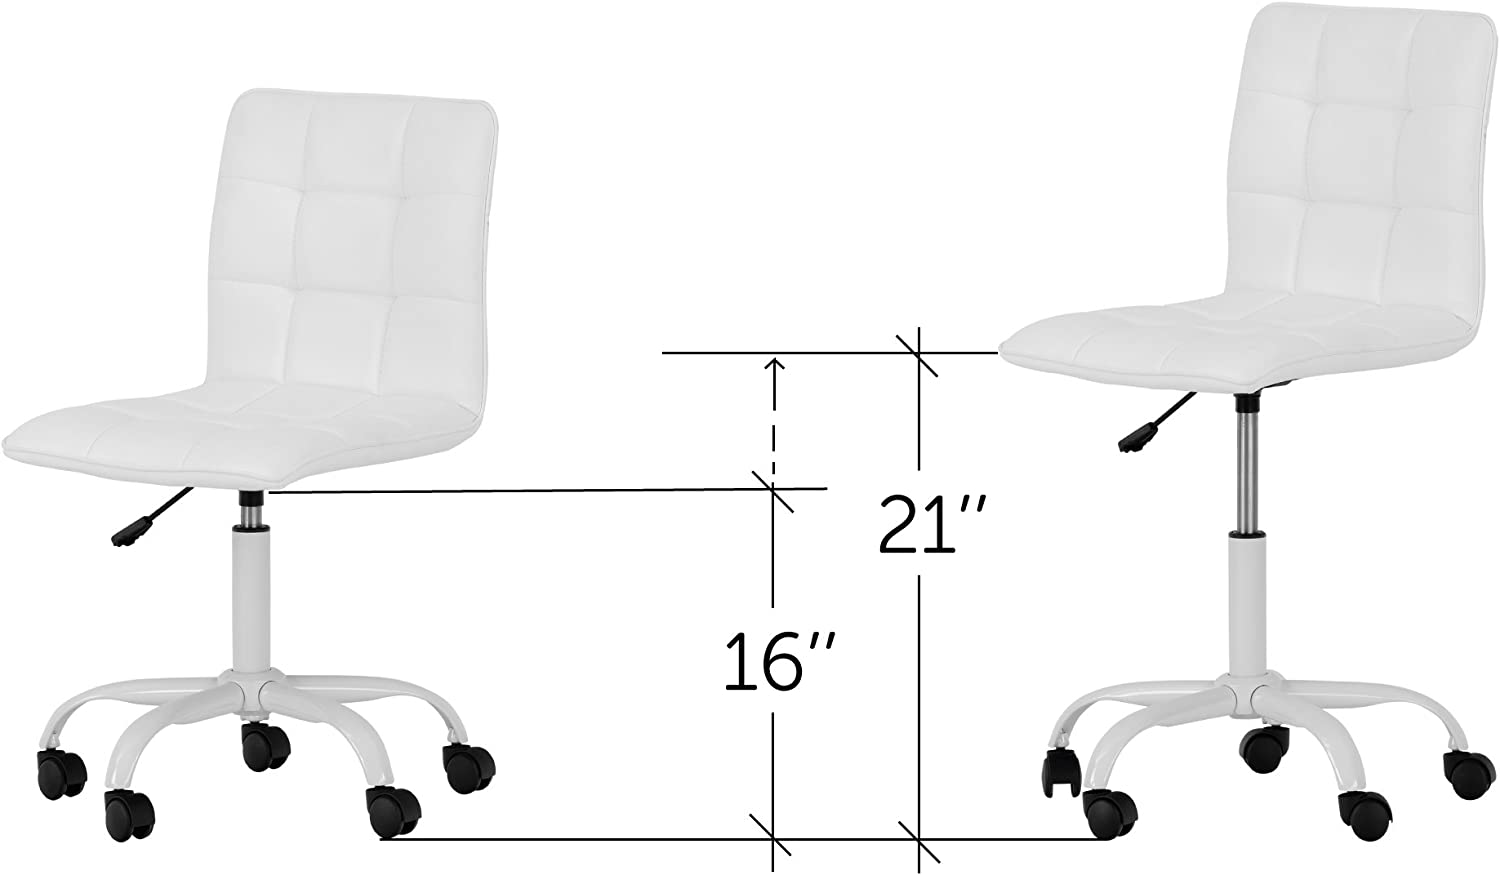 Annexe White Office Chair with Quilted Seat – Ergonomic Executive Office Chair – Mid Back Chair for Home Office by South Shore